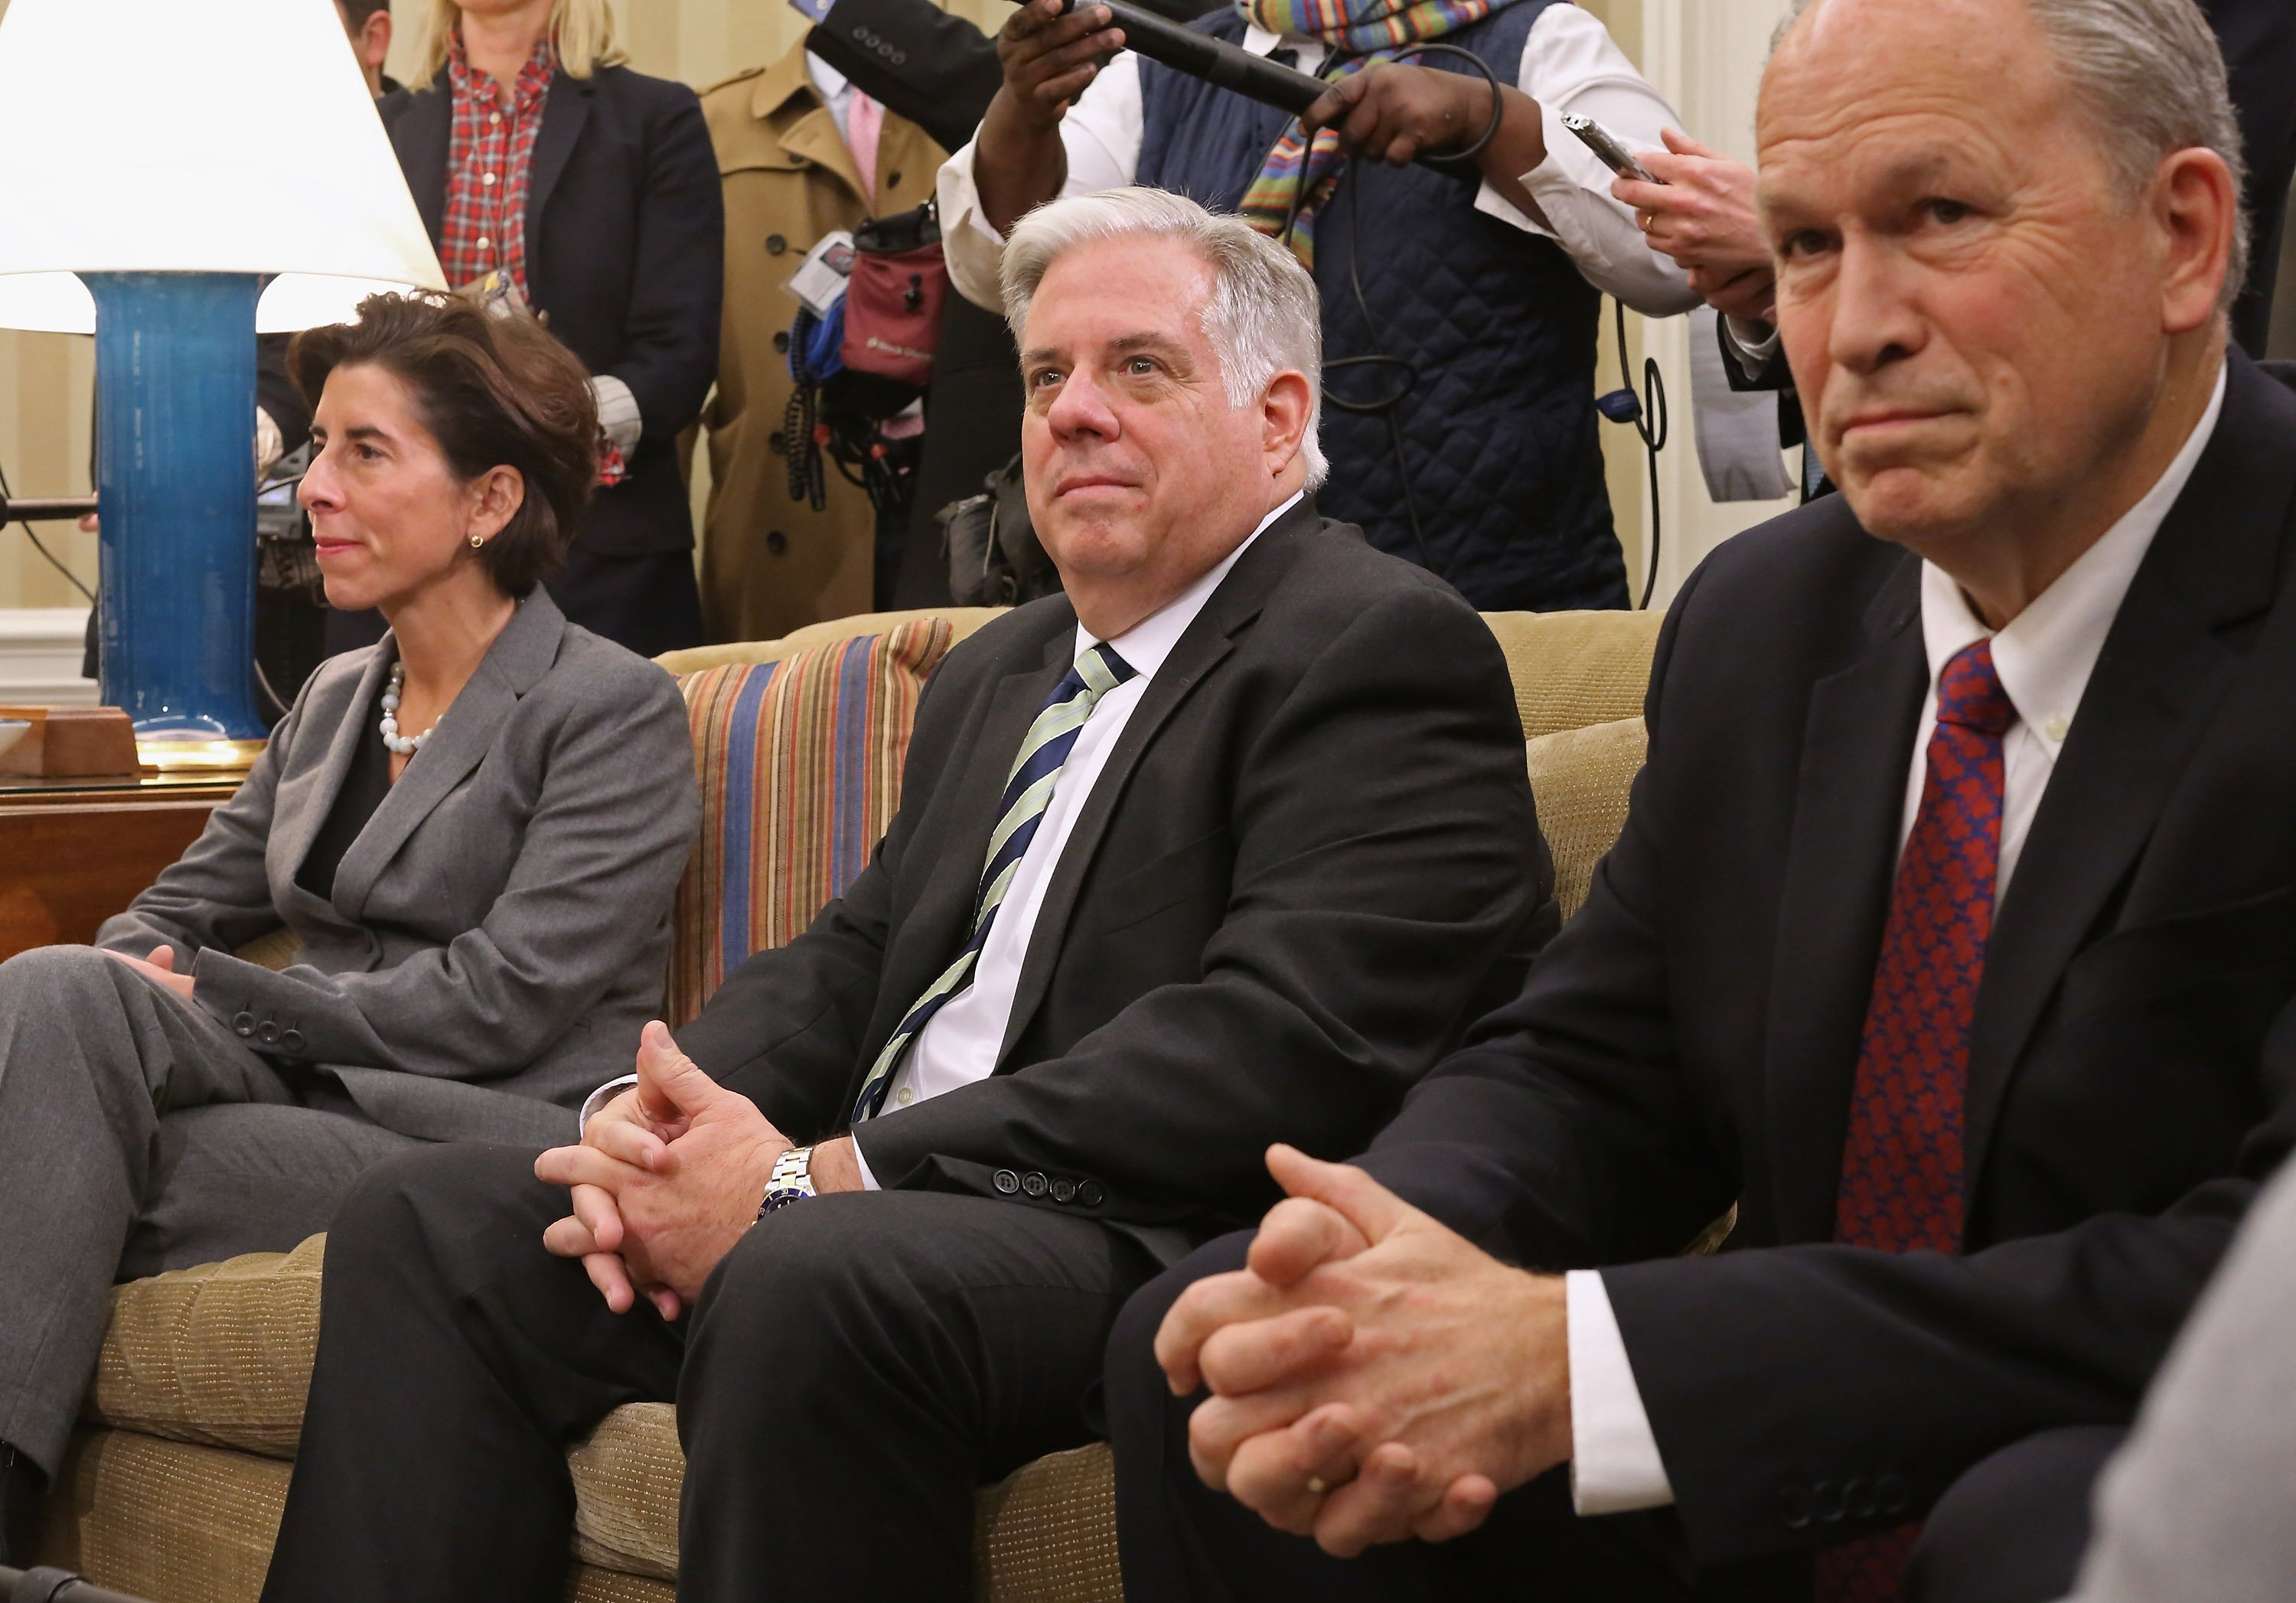 WASHINGTON, DC - DECEMBER 05: Governor-elect Gina Raimondo of Rhode Island, Governor-elect Larry Hogan of Maryland and Gov. Bill Walker of Alaska meet with U.S. President Barack Obama in the Oval Office at the White House December 5, 2014 in Washington, DC. Obama also met with the governors-elect from Pennsylvania, Massachusetts, Illinois and Texas, and said kthe group would talk about issues where the states and the White House have common ground. (Photo by Chip Somodevilla/Getty Images)